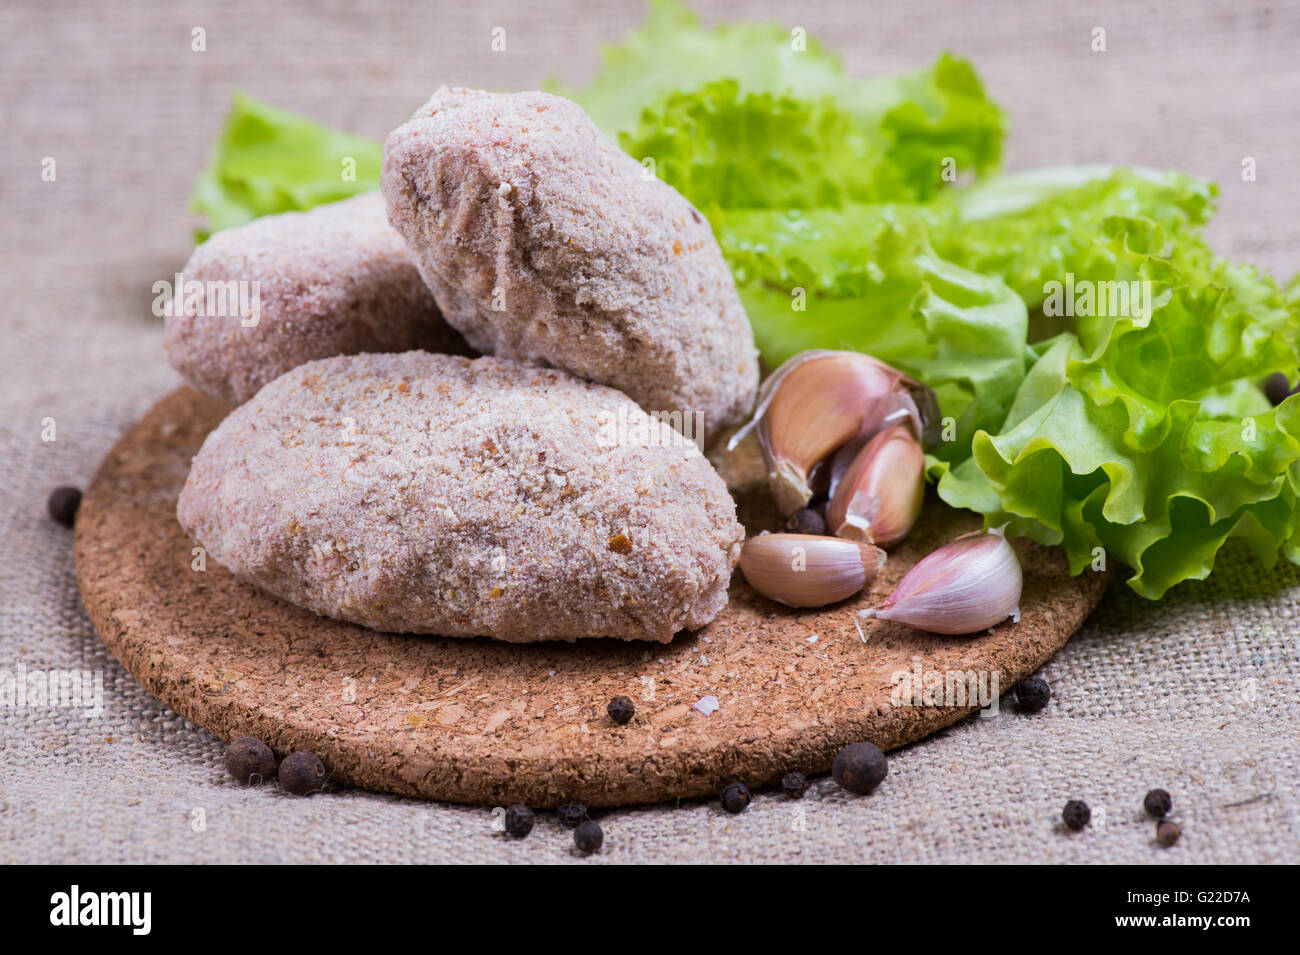 fresh raw cutlet with herbs and tomatoes, mushrooms, pepper - Stock Image